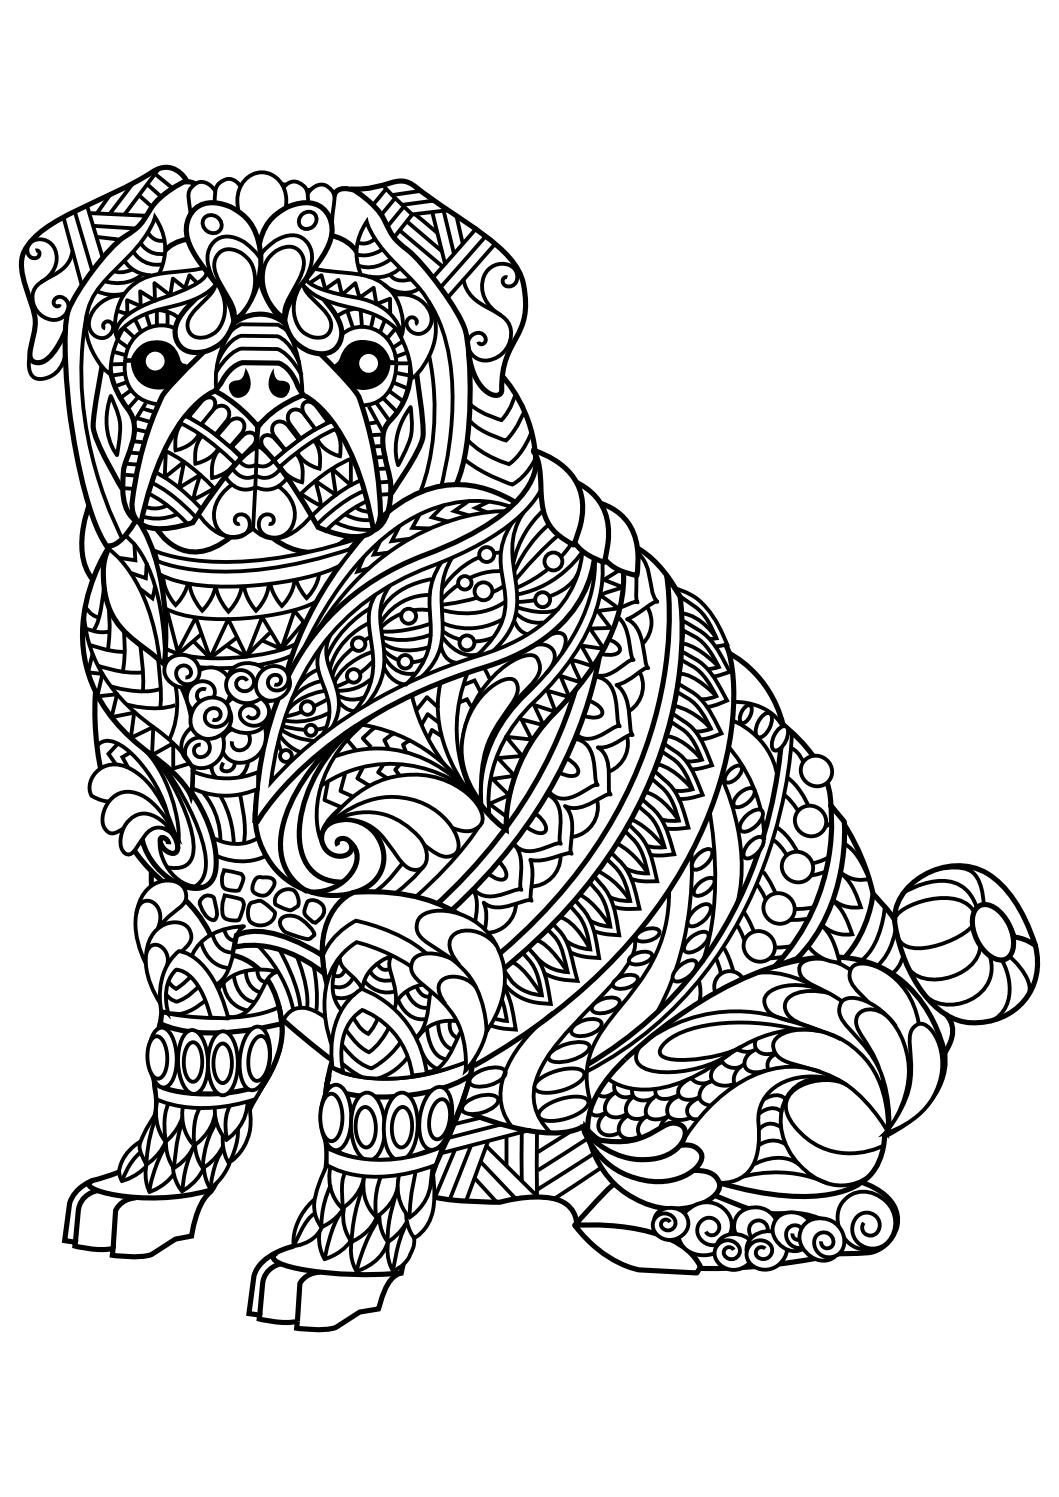 Pin On Cats Dogs Coloring Pages For Adults